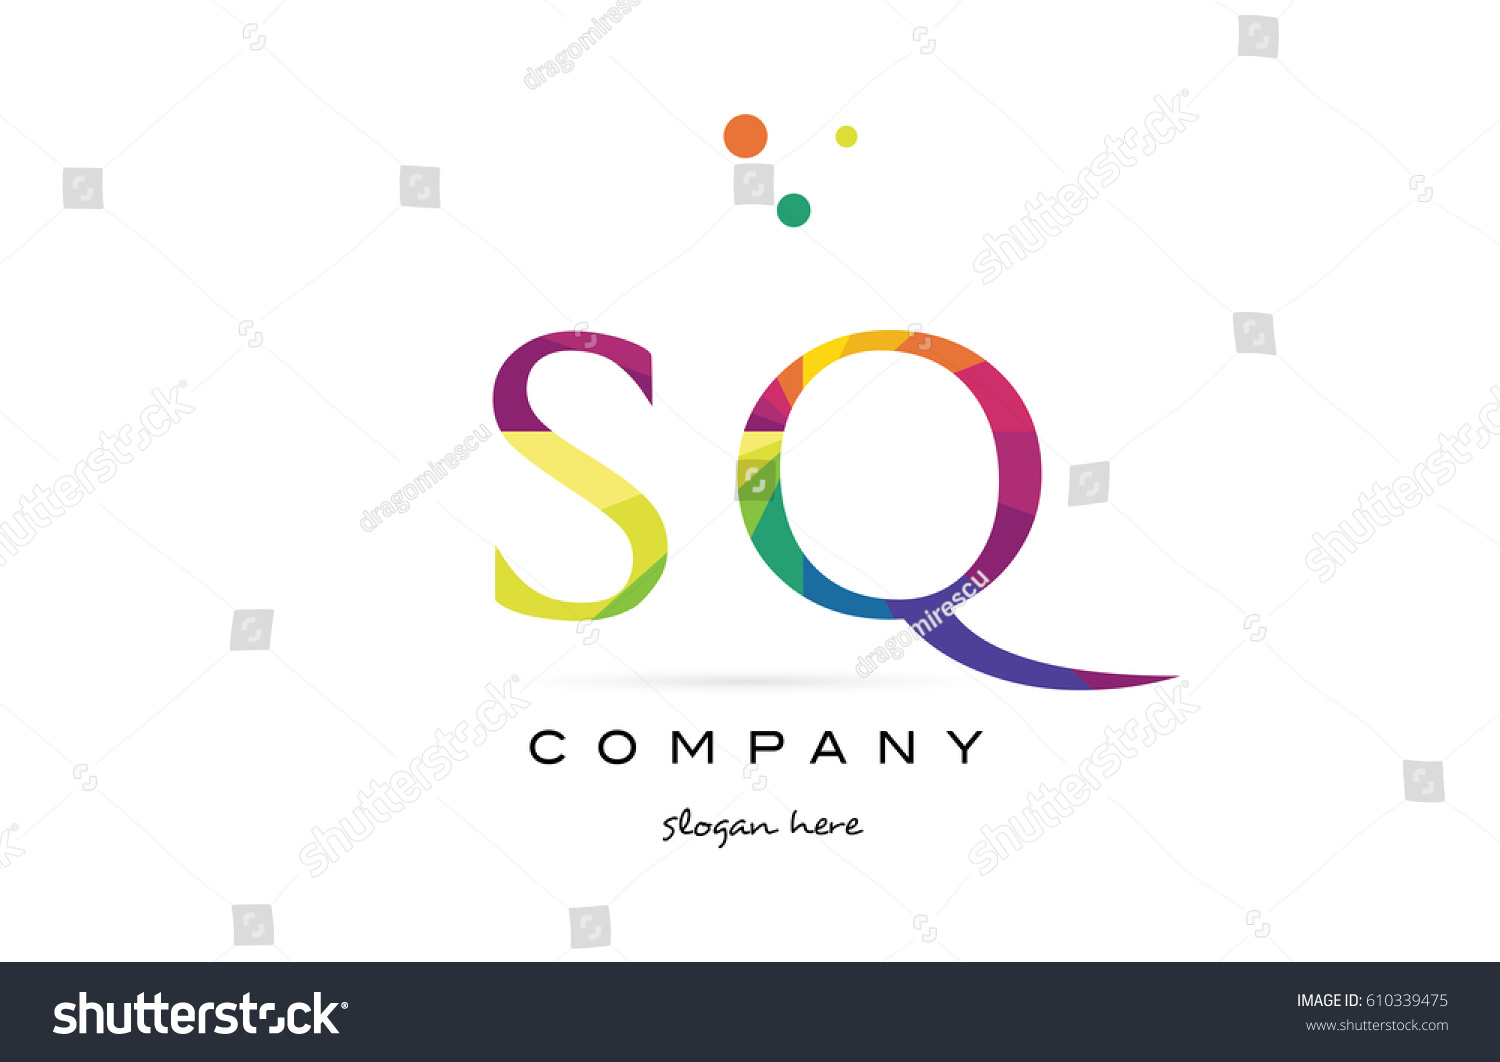 sq s q creative rainbow colors colored alphabet company letter logo design  vector icon template